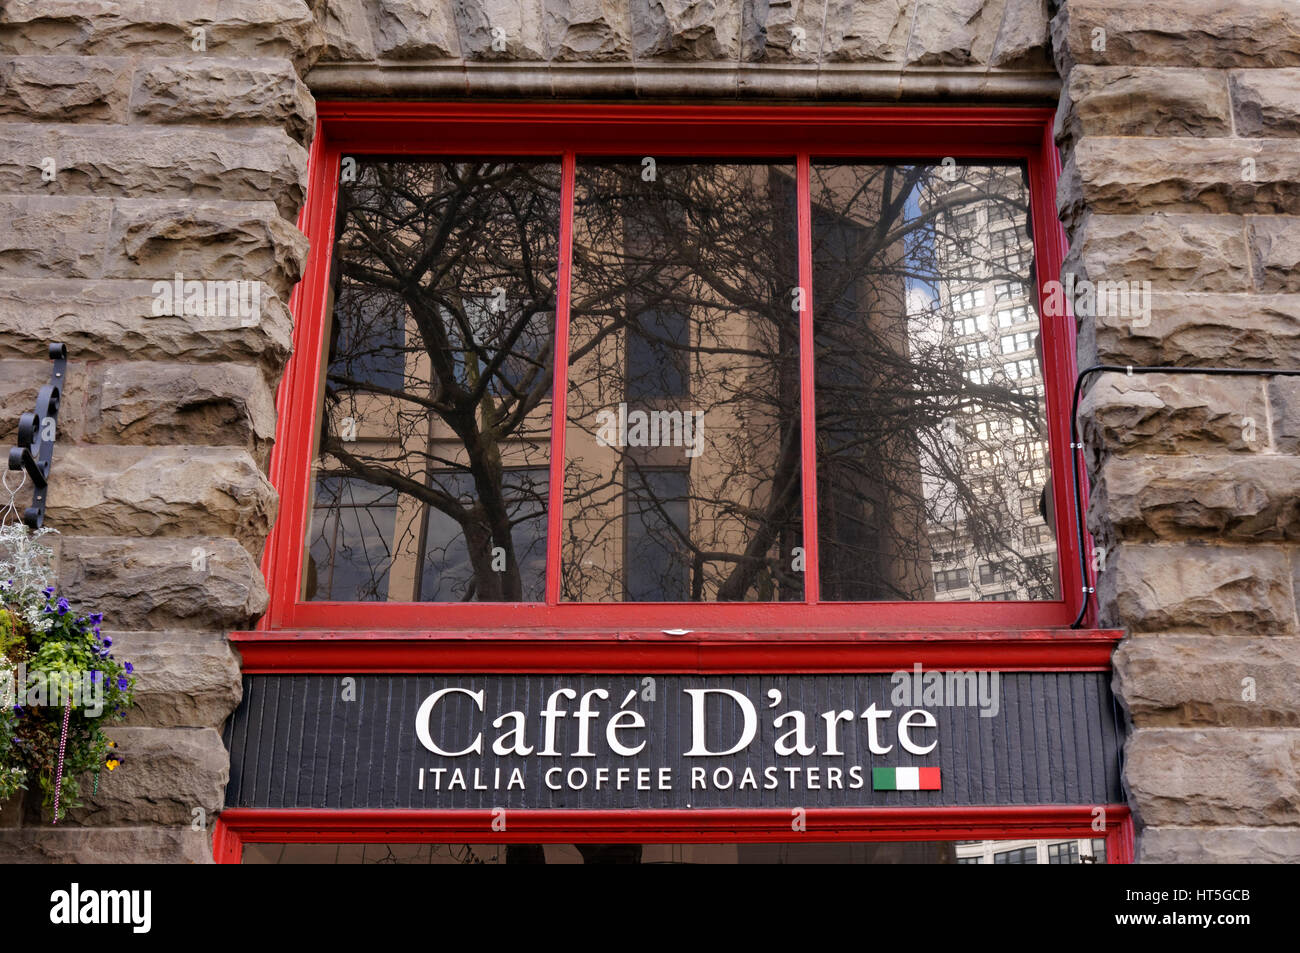 Caffe D'arte Italian Coffee Roasters coffee shop in the Pioneer Square district,  Seattle, Washington, USA - Stock Image